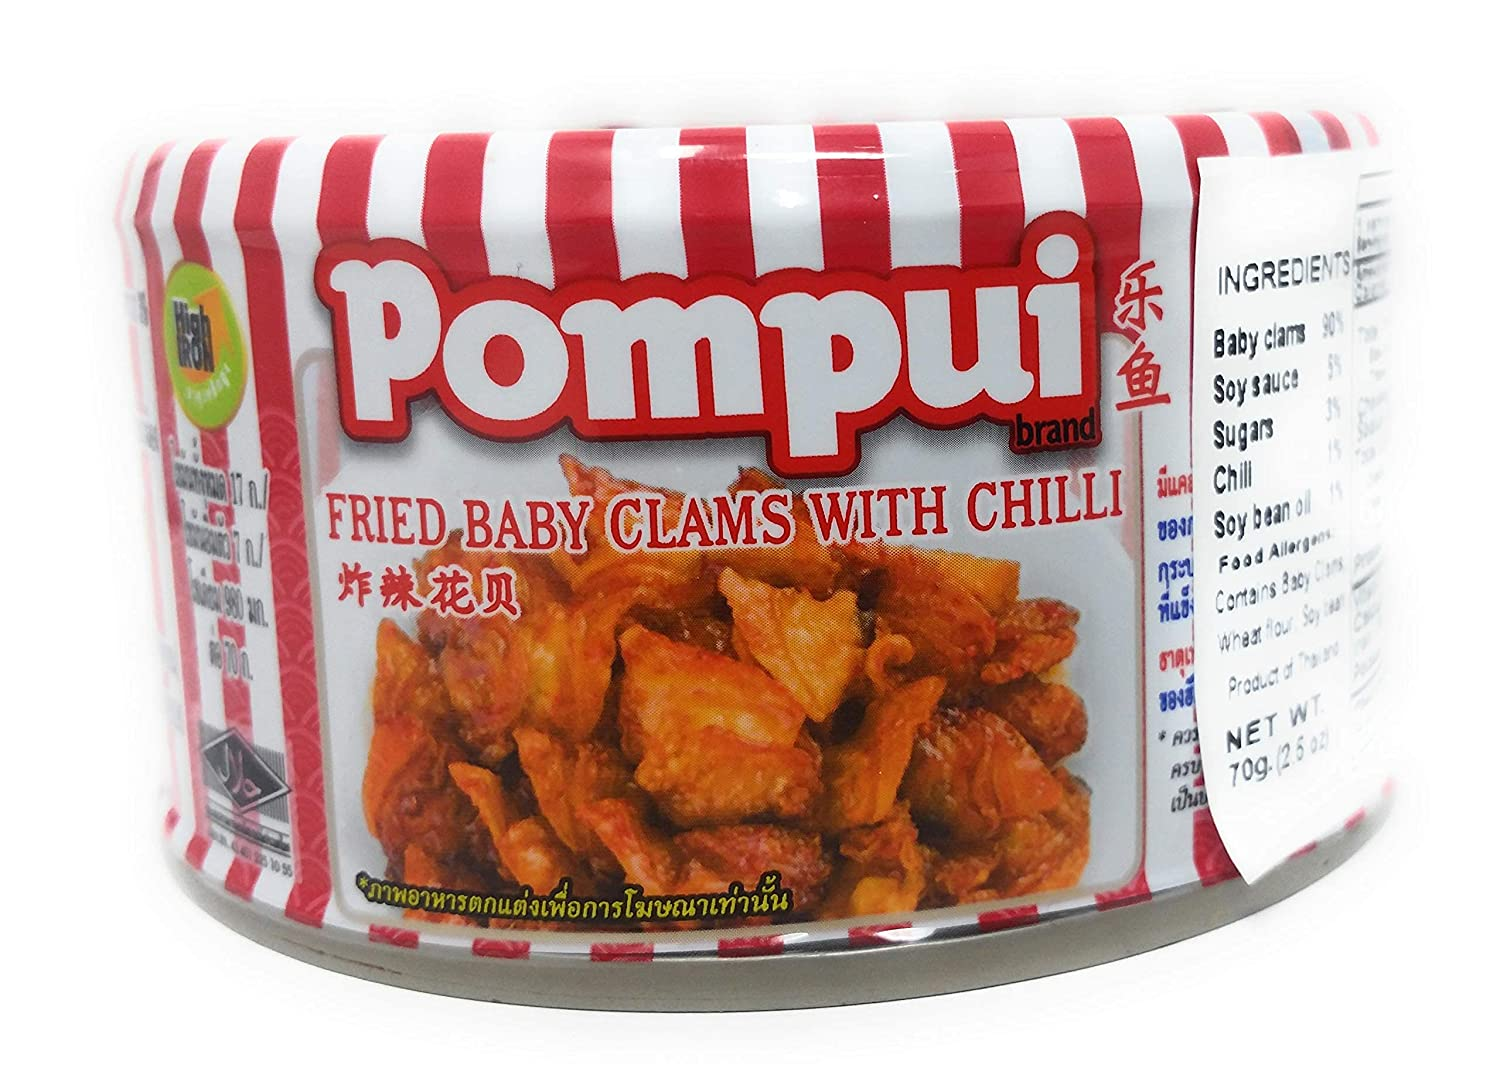 Pompui Thai Fried Baby Clams With Chilli (3 Cans, Total of 7.5oz